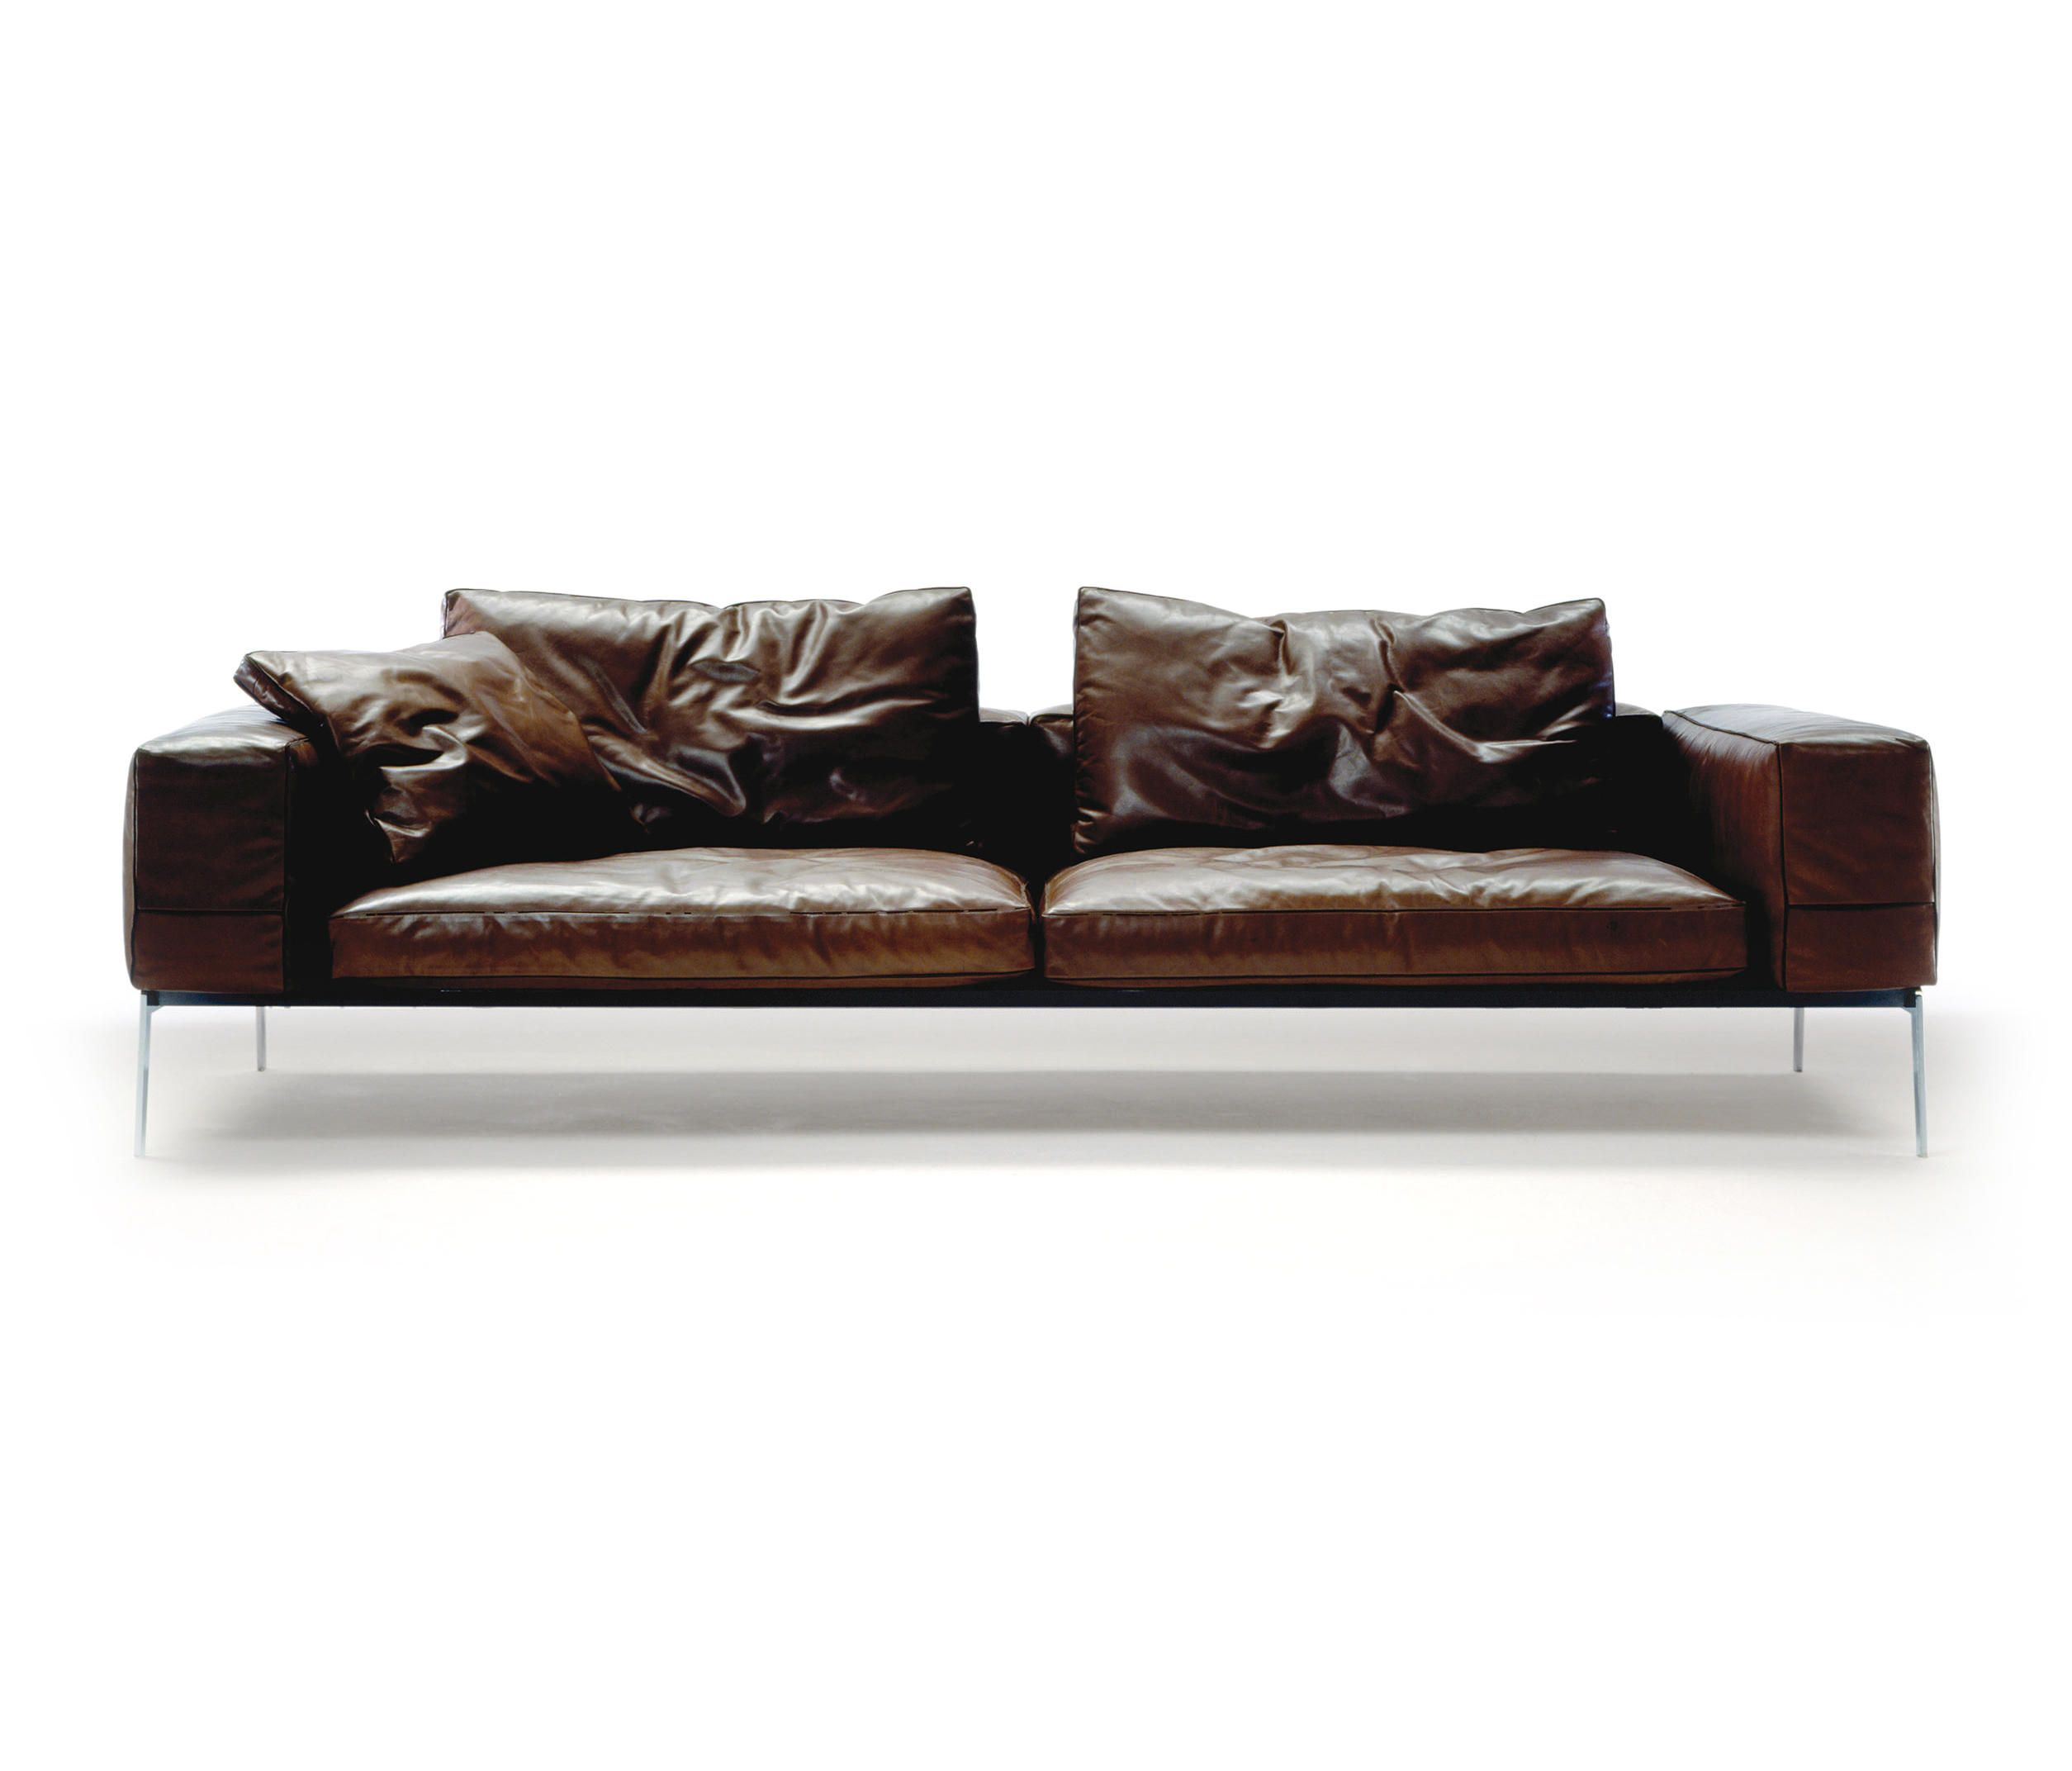 Full Size of Flexform Sofa Ebay Cost Furniture Uk Winny Bed Groundpiece Lifesteel Sofas From Architonic Rotes Abnehmbarer Bezug Blau Kolonialstil Recamiere Stressless Sofa Flexform Sofa